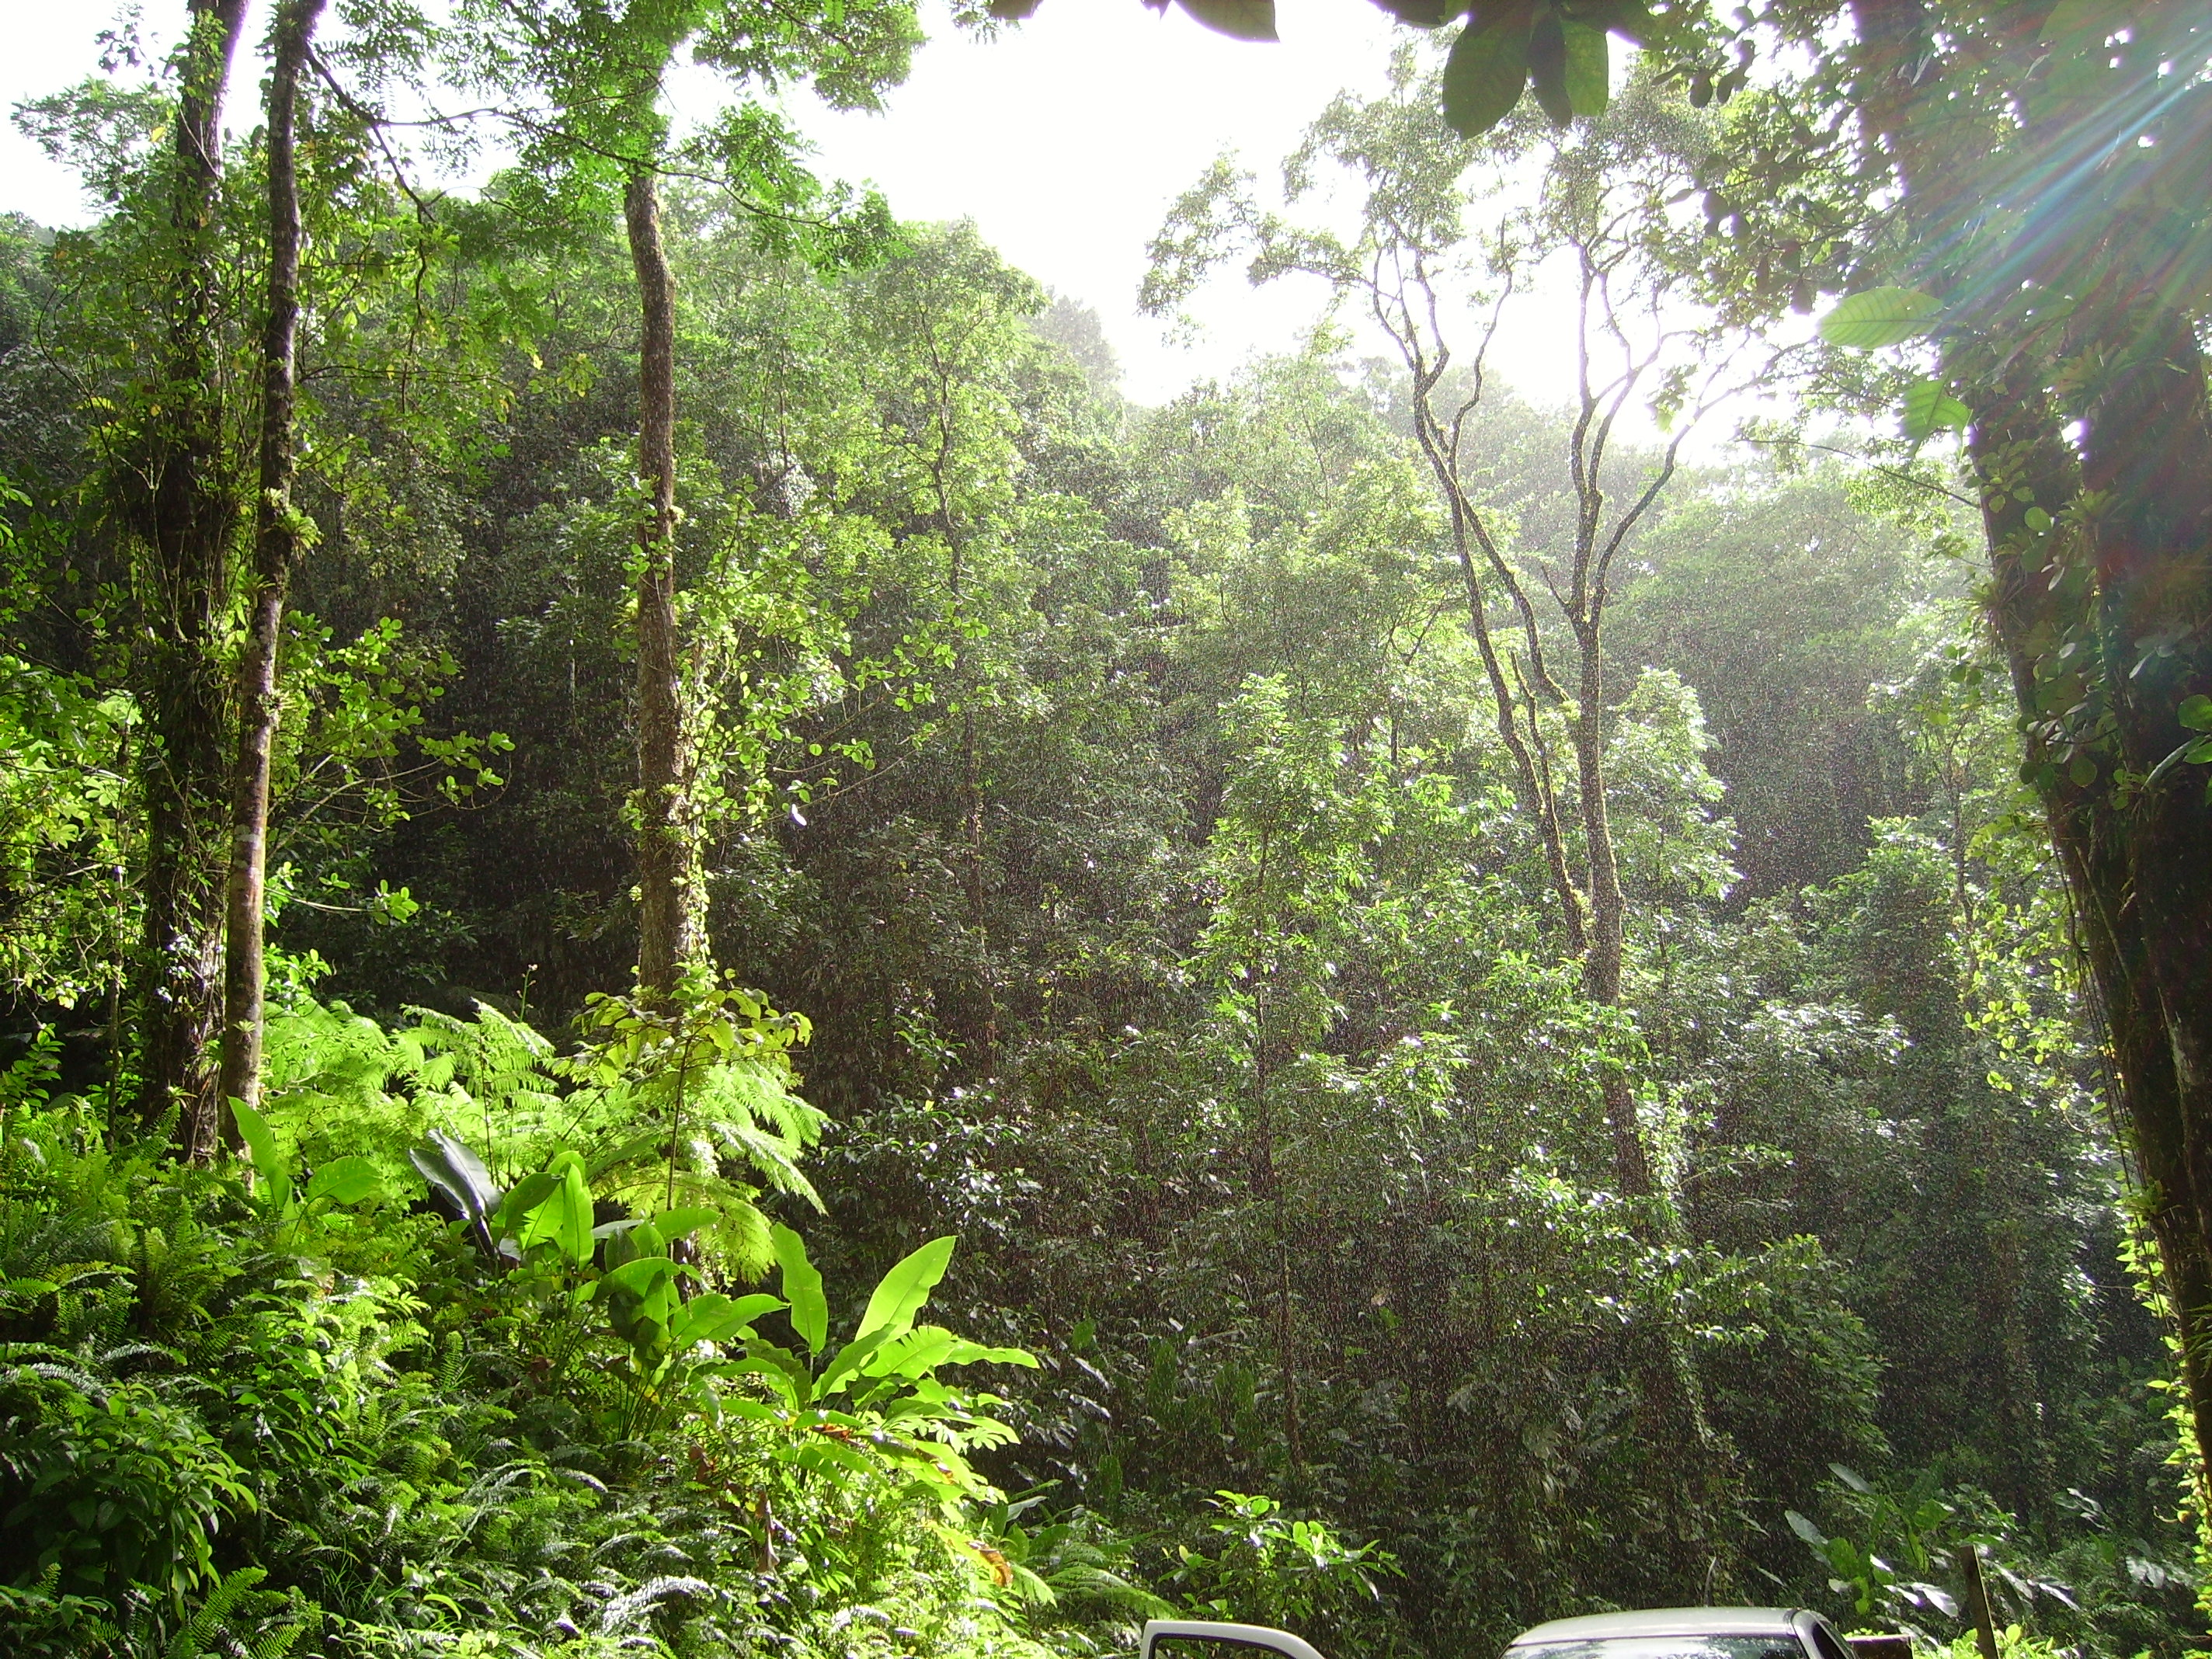 File:Tropical Forest.JPG